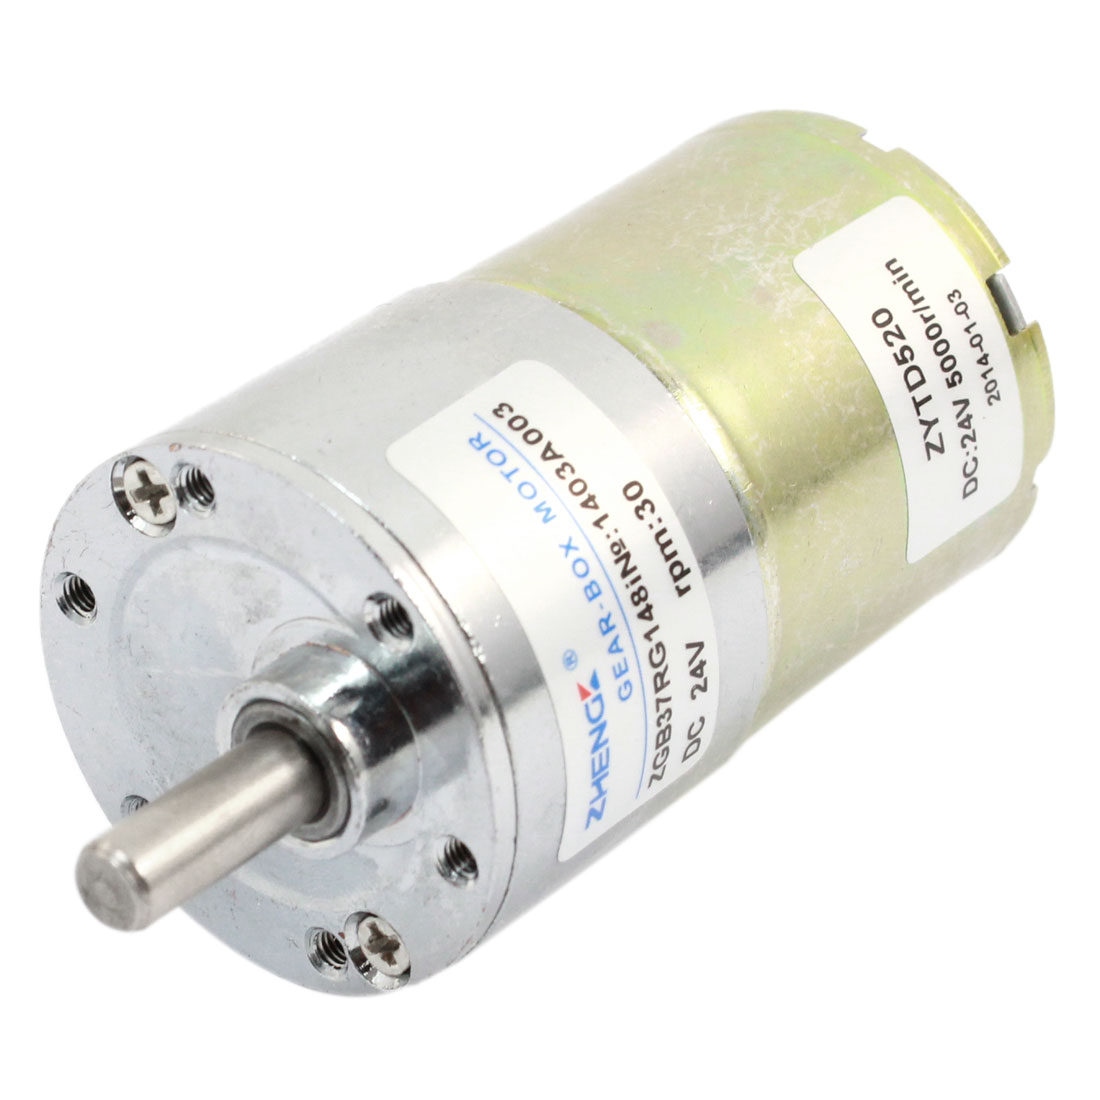 6mm Dia Shaft Permanent Magnetic DC Geared Gear Box Motor 24V 30RPM